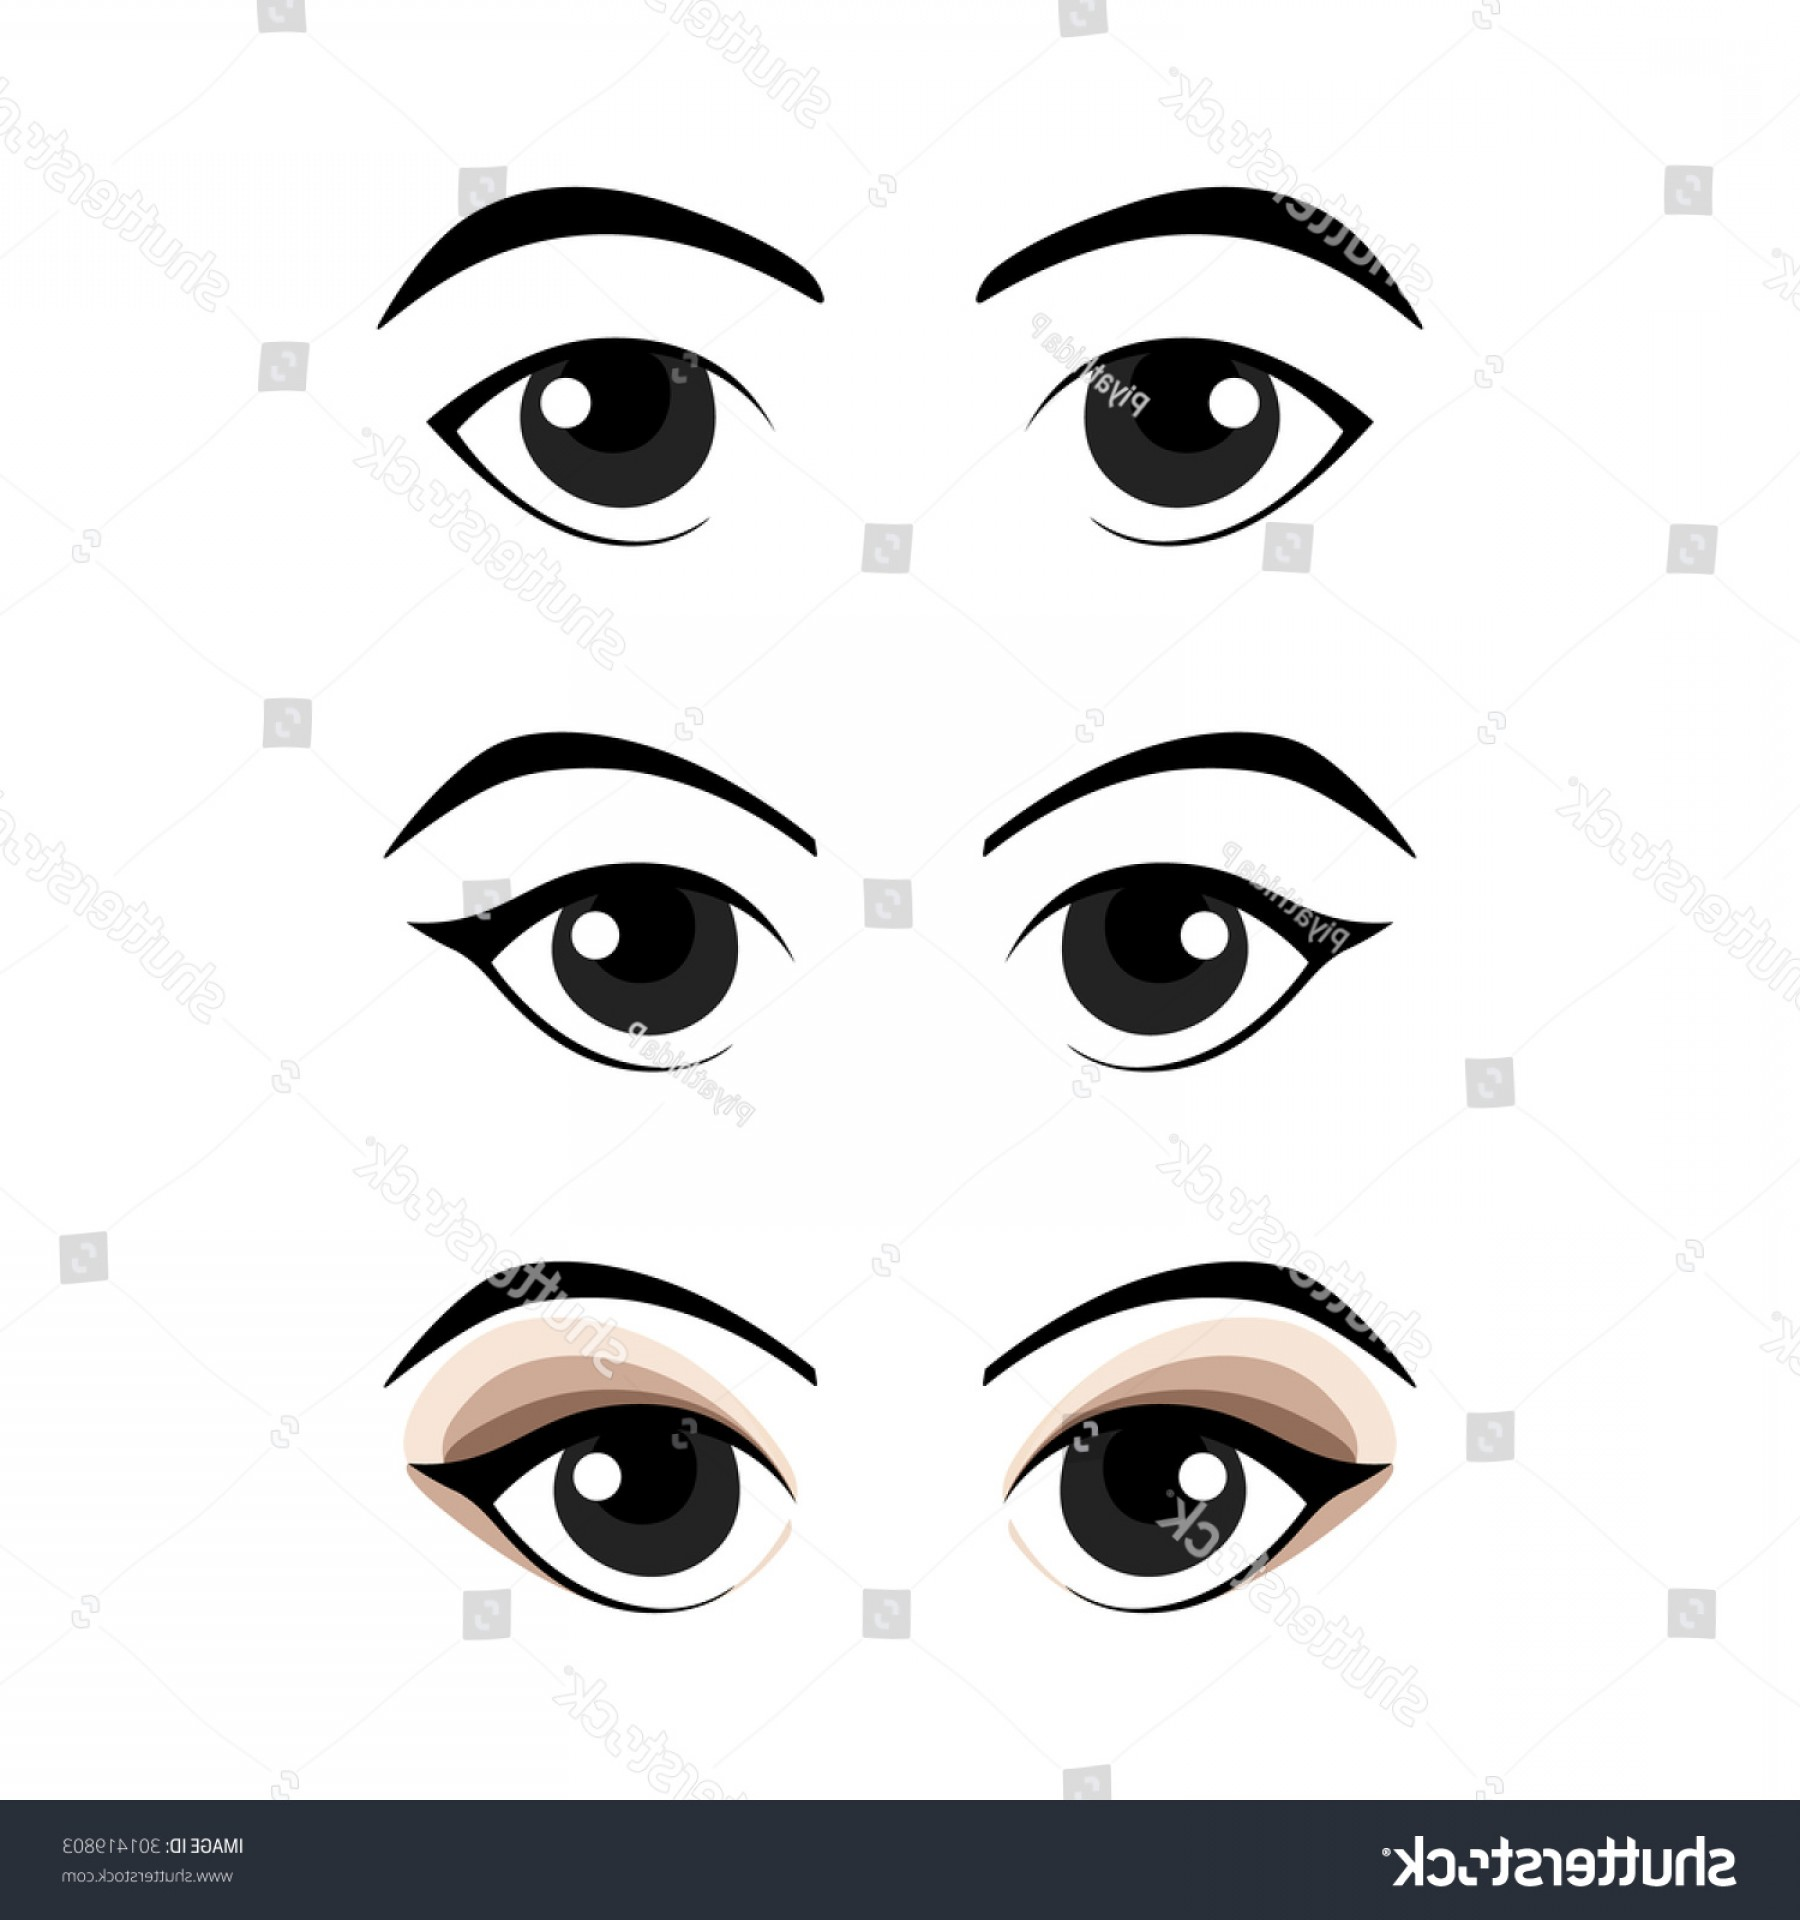 Green Cartoon Eyes Vector Png: Set Cartoon Eyes Vector Illustration